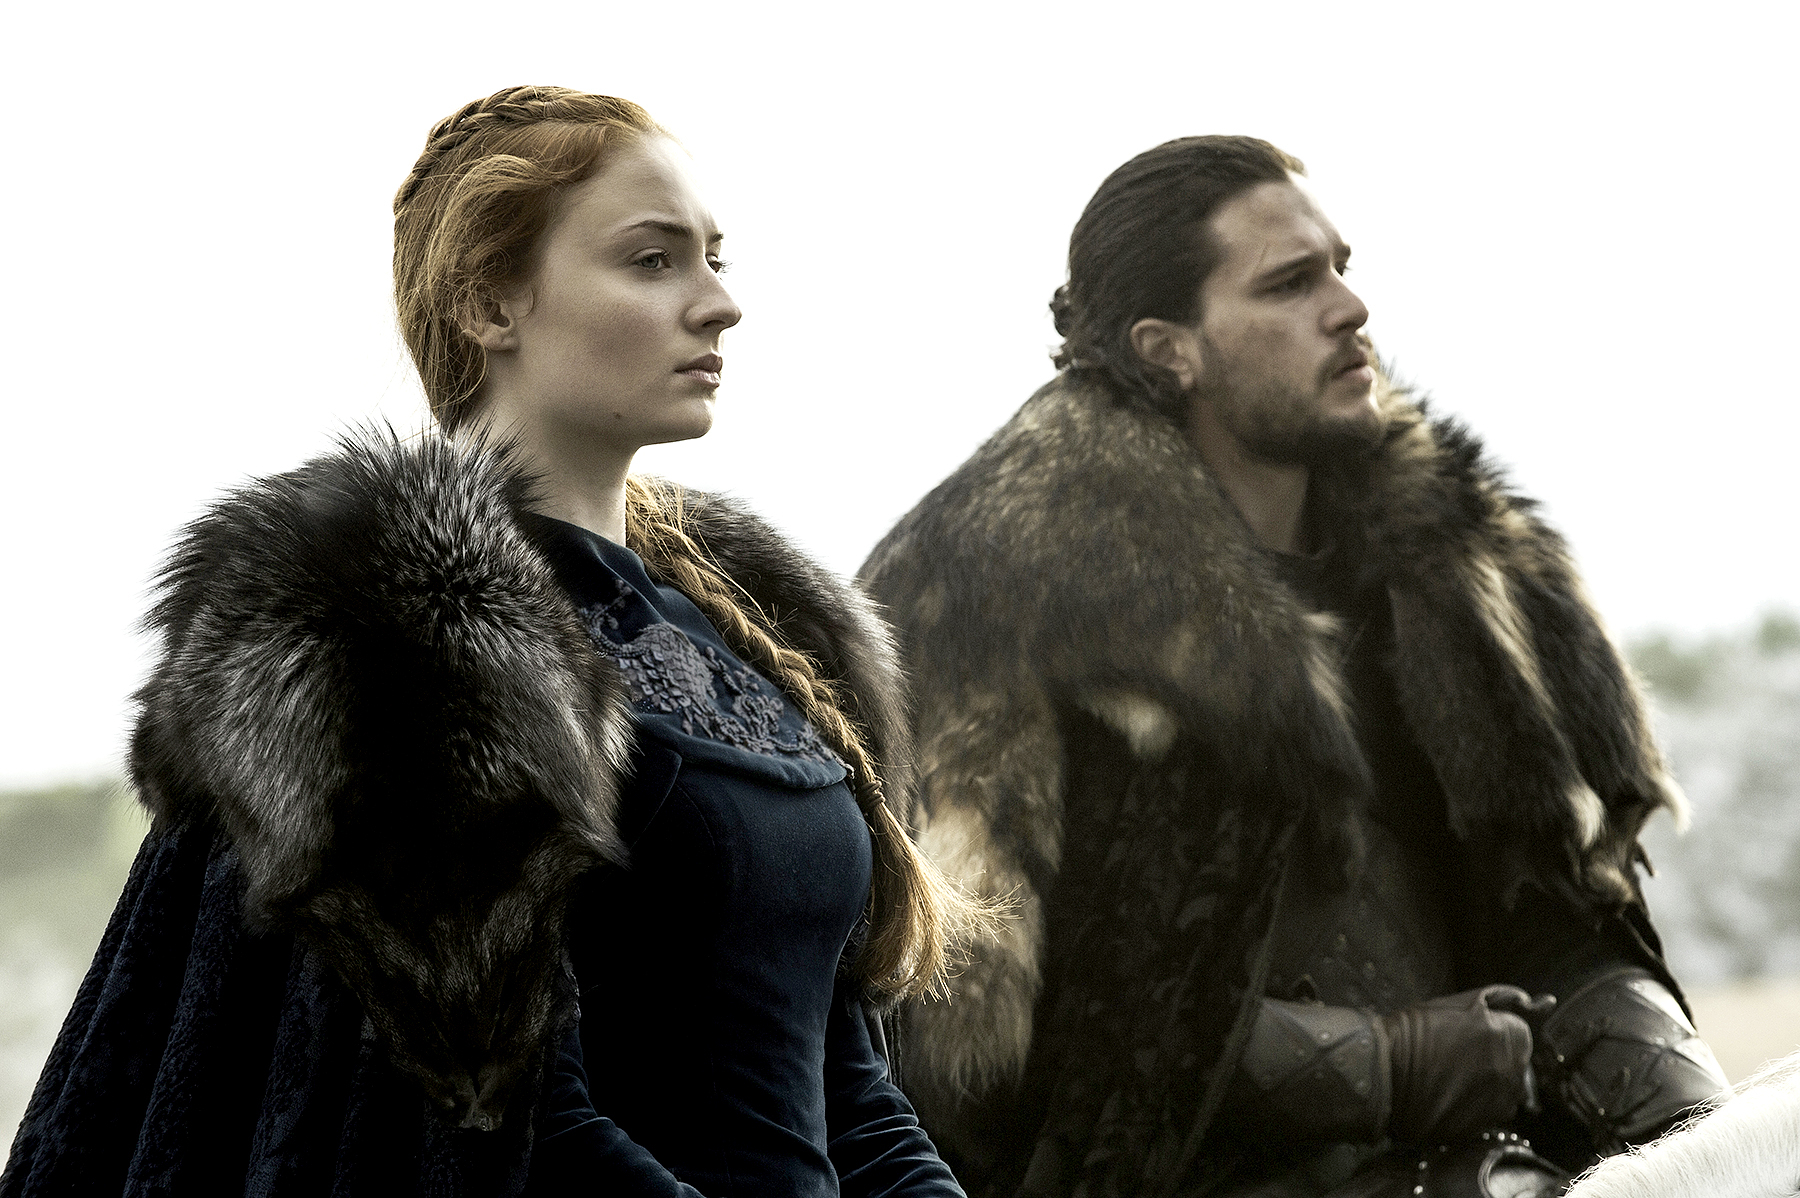 Sophie Turner and Kit Harington on Game of Thrones.